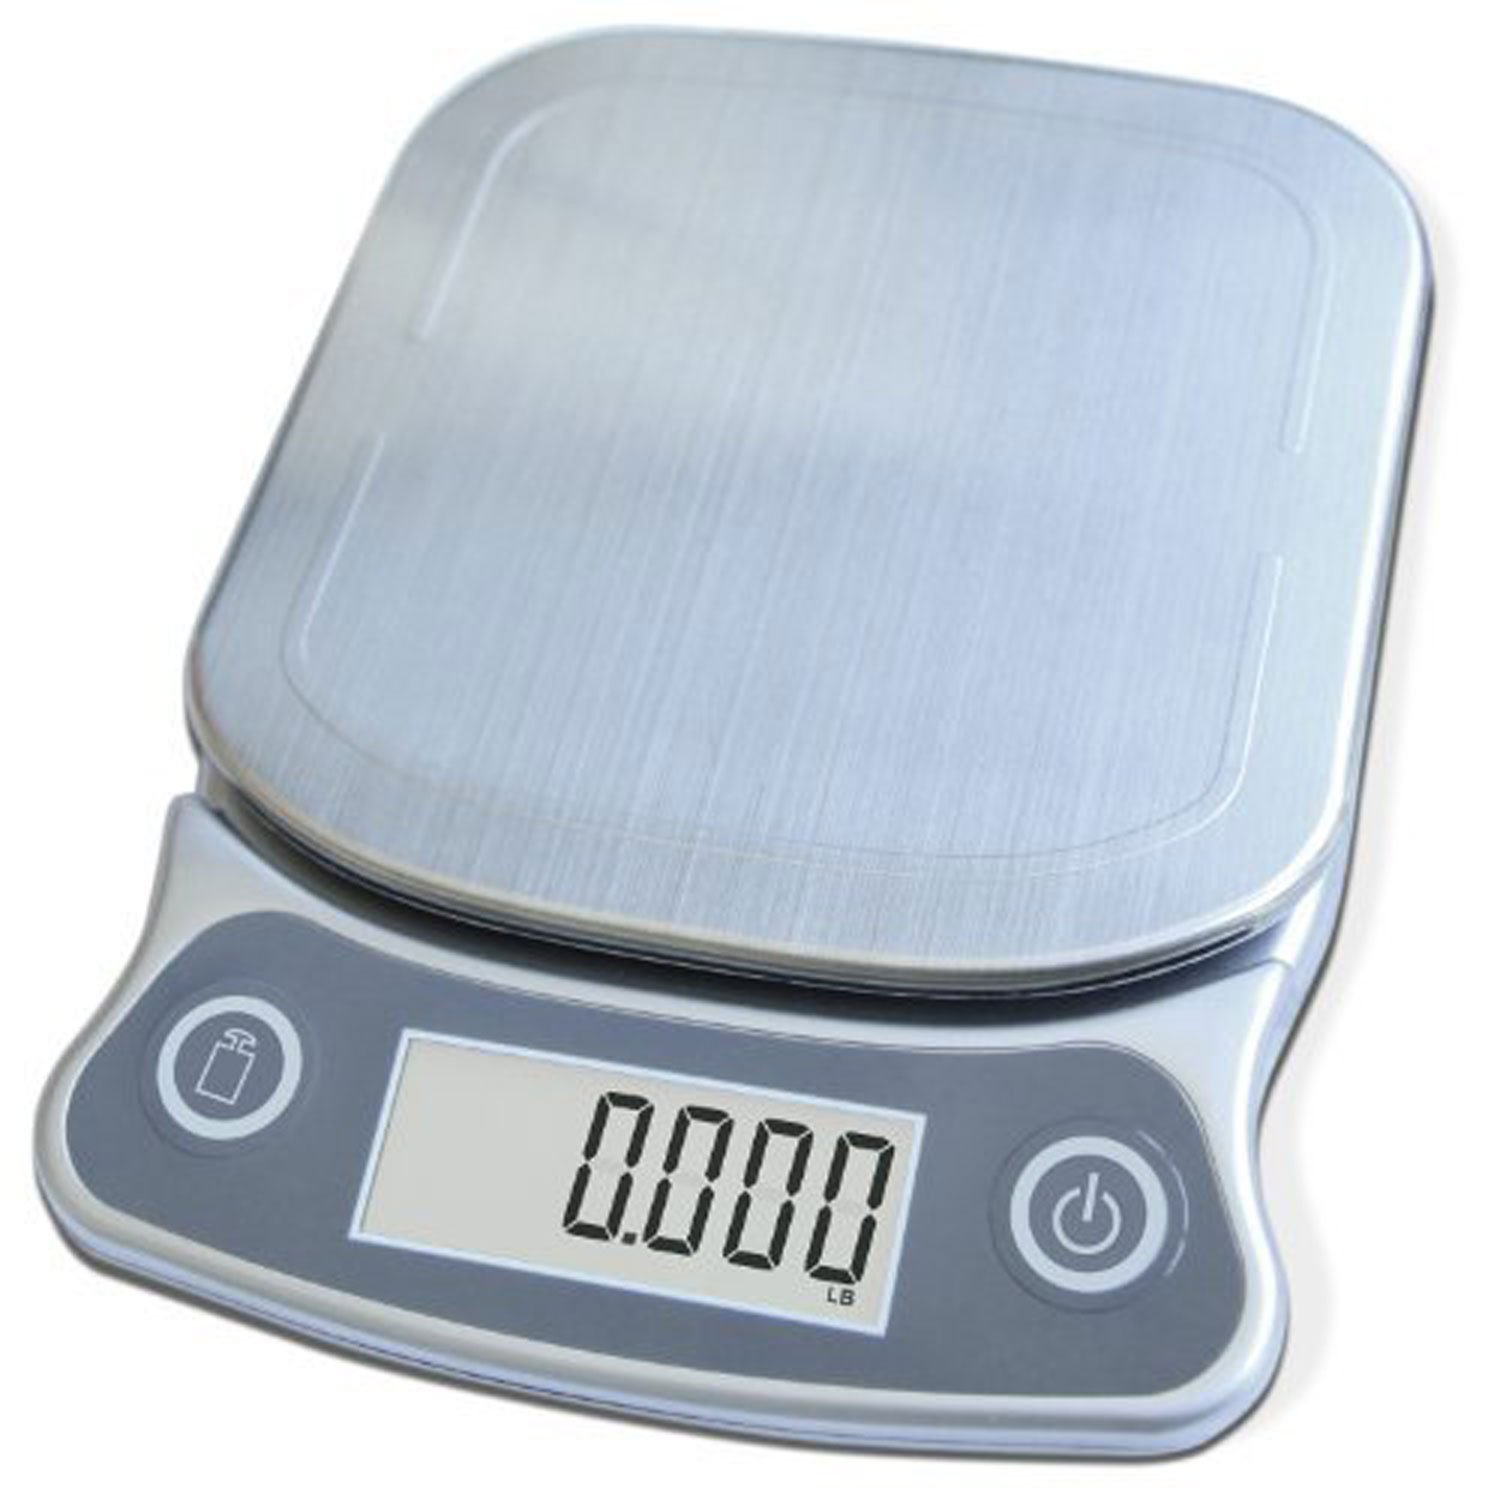 EatSmart Precision Elite Digital Kitchen Scale - 15 lb. Capacity, UltraBright Display and Stainless Steel Platform